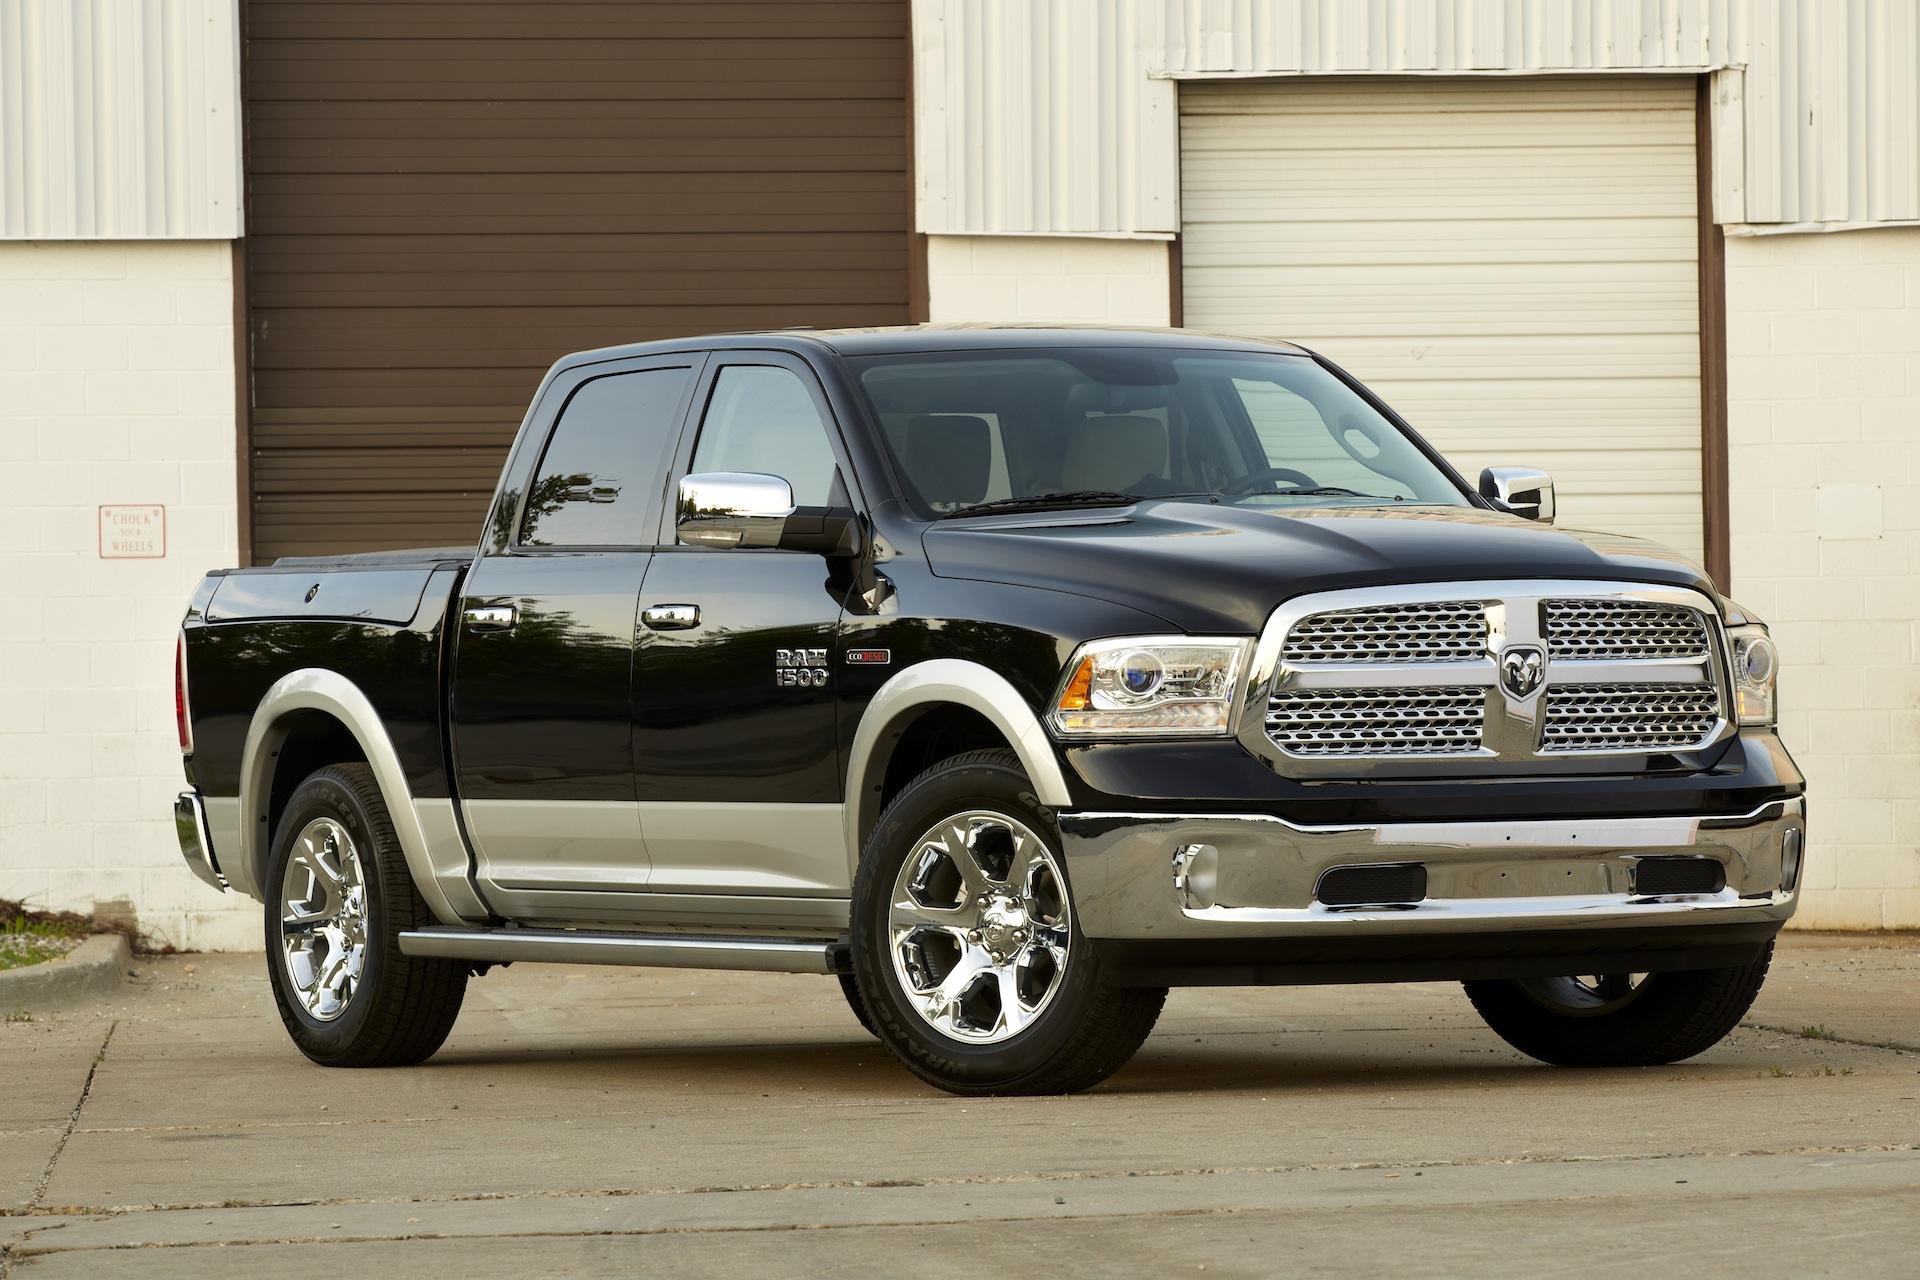 Dodge Ram Ecodiesel >> 2014 Ram 1500 Ecodiesel Tested At 28 Mpg On Highway